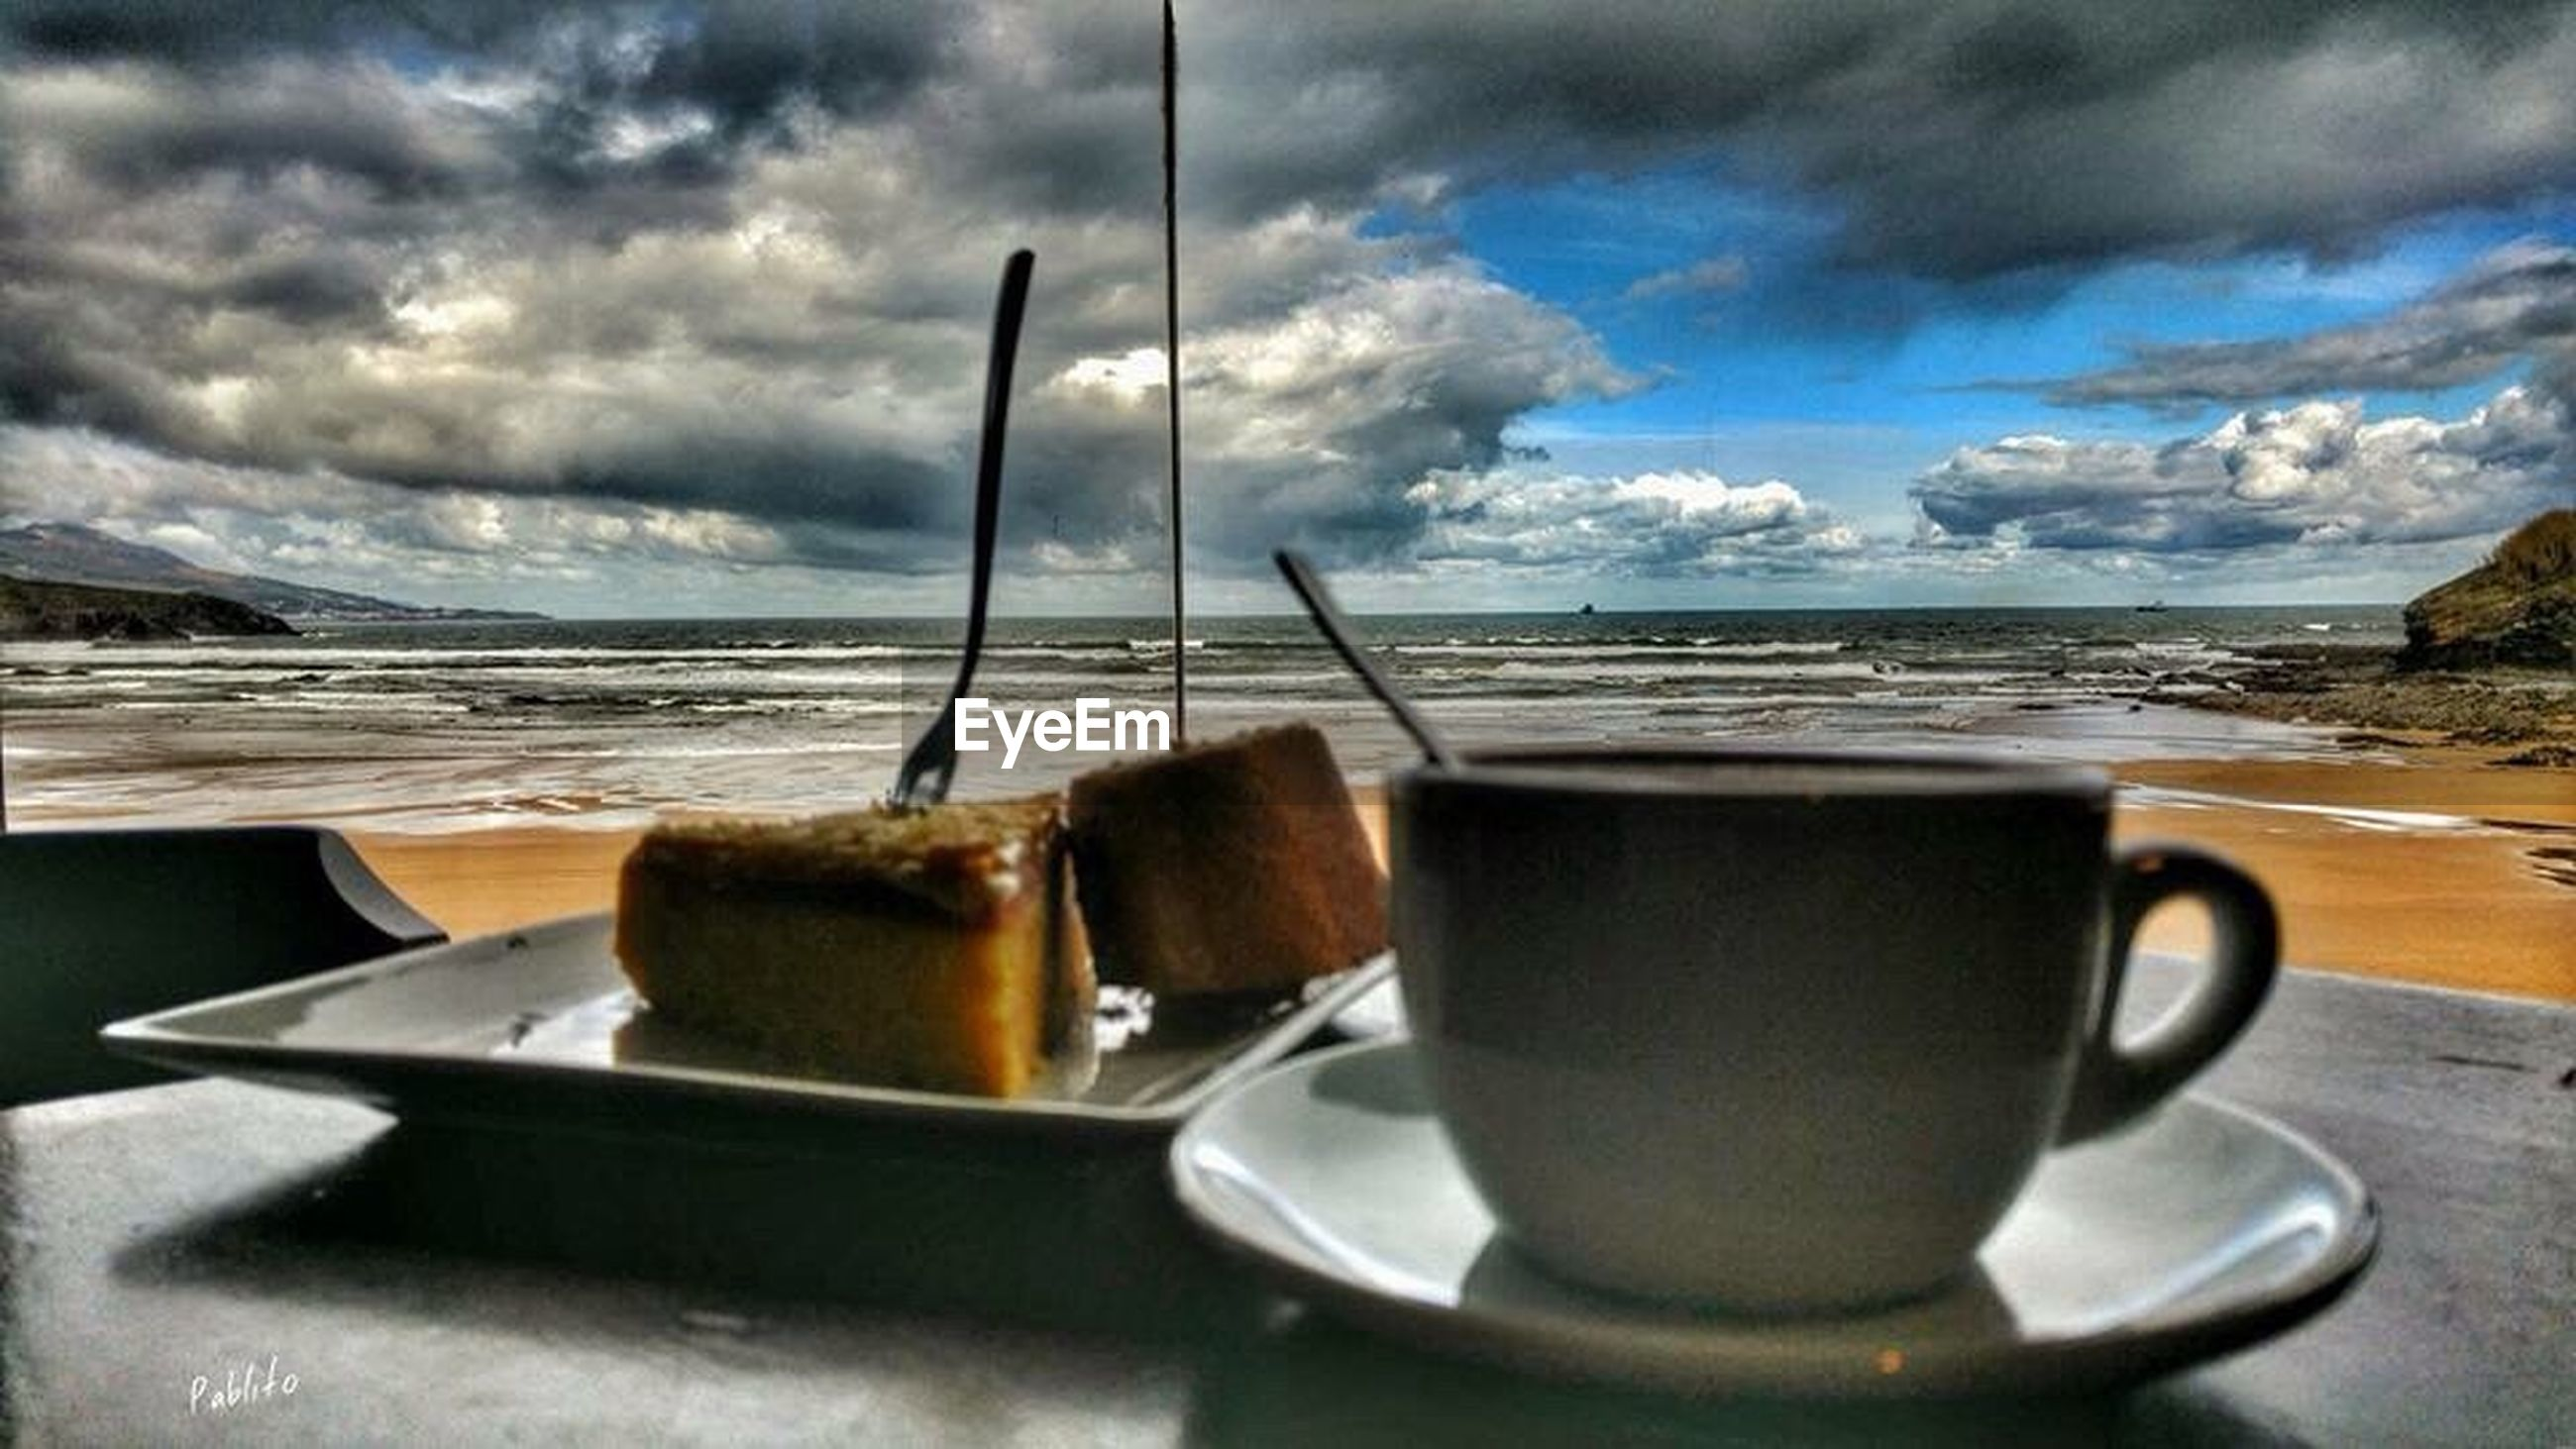 food and drink, drink, coffee cup, refreshment, table, sky, freshness, cloud - sky, coffee - drink, saucer, coffee, cloud, frothy drink, still life, sea, spoon, cup, cappuccino, indoors, beverage